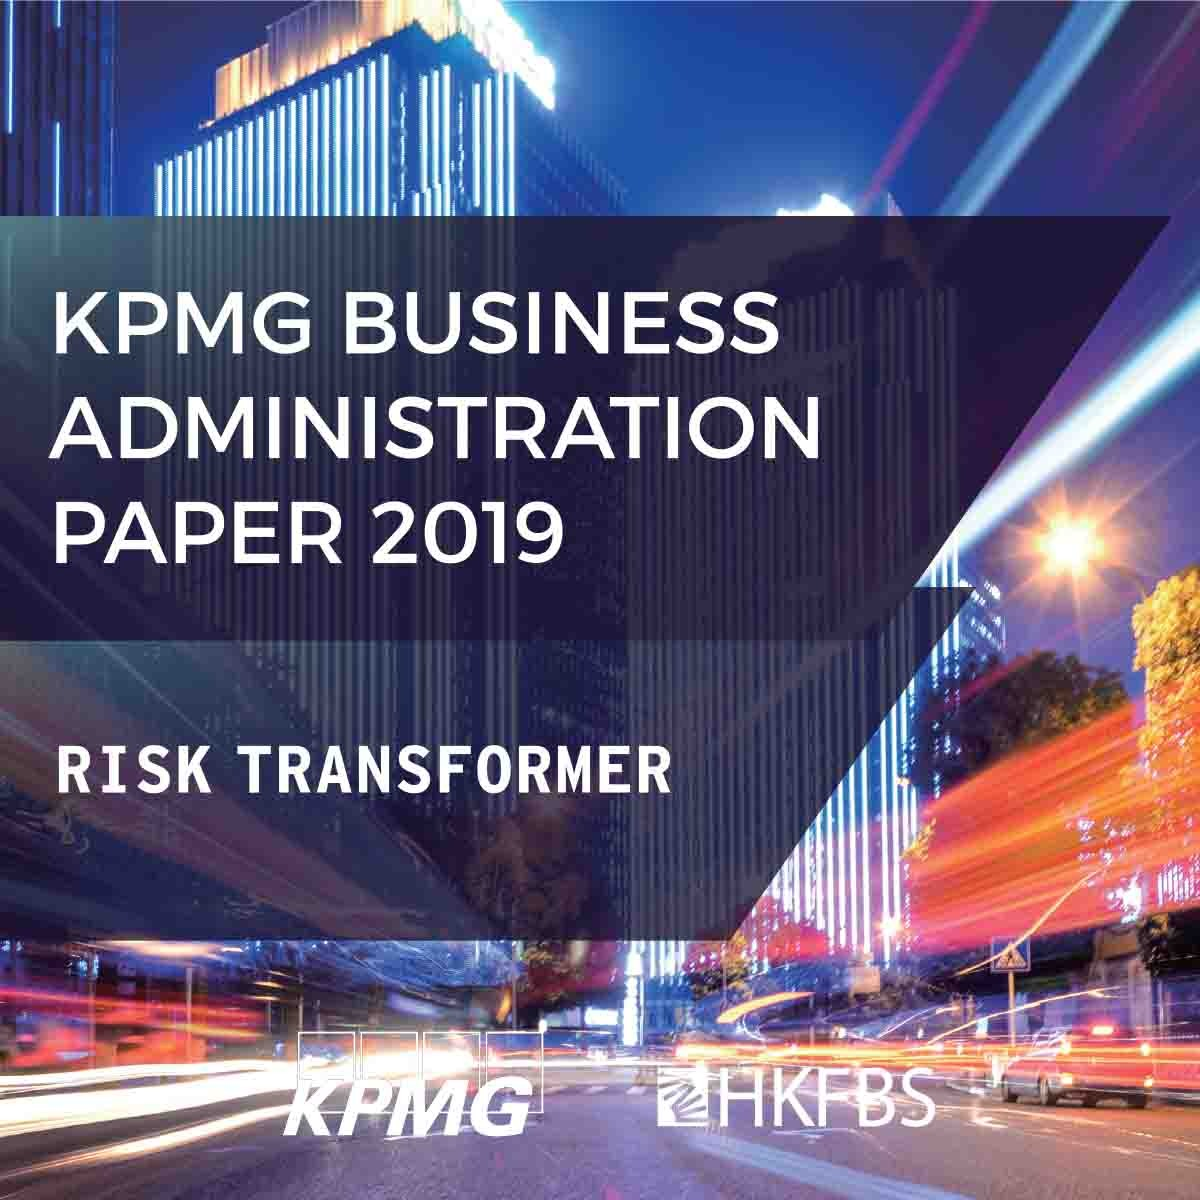 Business Administration Paper 2019